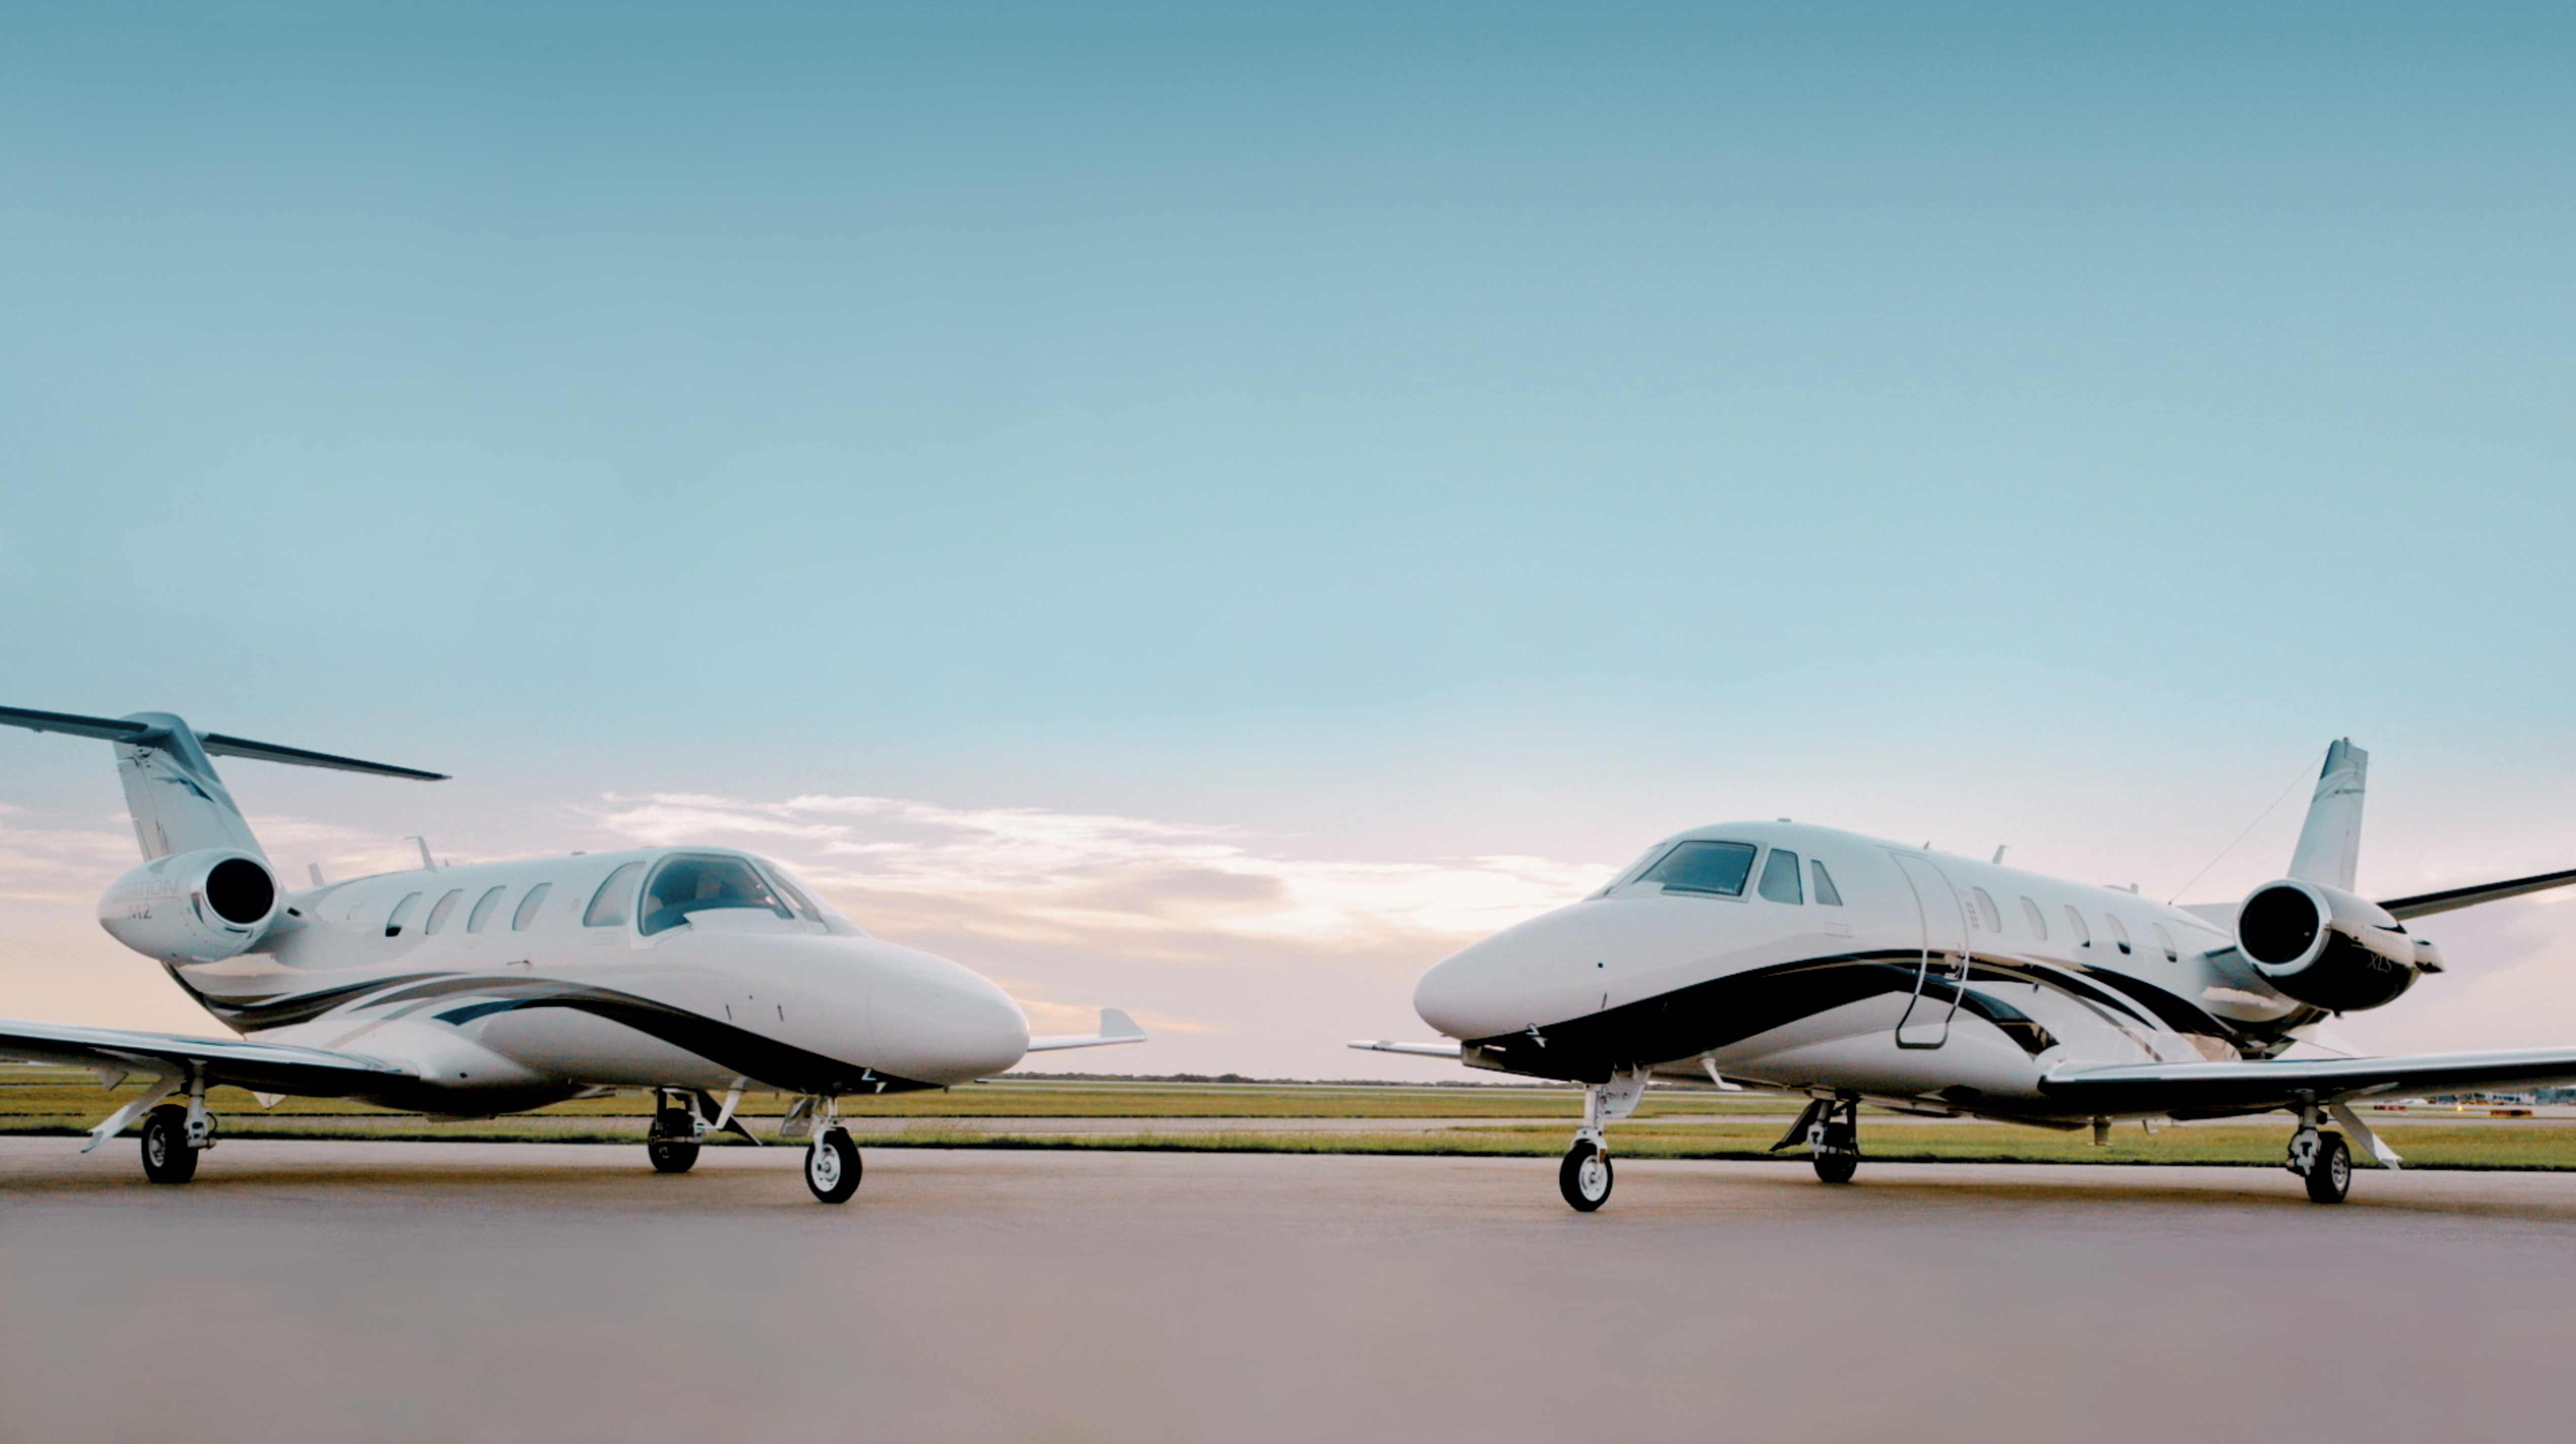 A handout photo shows the new Textron Cessna M2 and XLS+ Gen 2 jets in Wichita, Kansas, U.S., August 25, 2021. Picture taken August 25, 2021.  Chad Slattery/Handout via REUTERS/Files